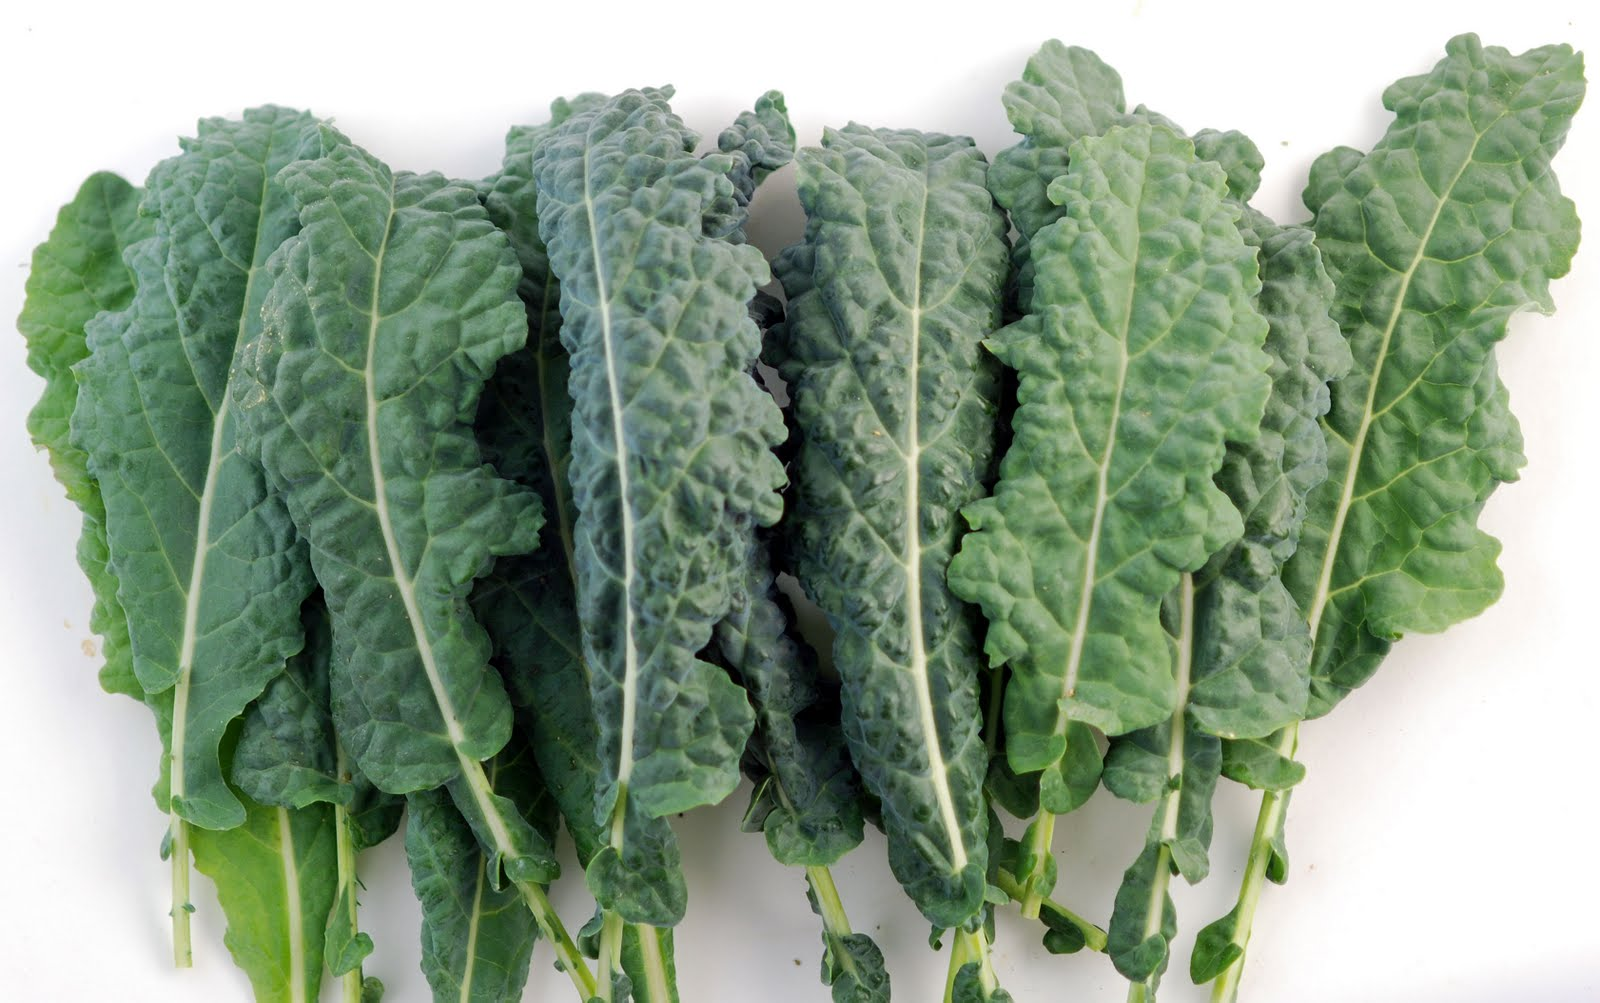 J-Wes's Ultimate Secret Kale Recipe